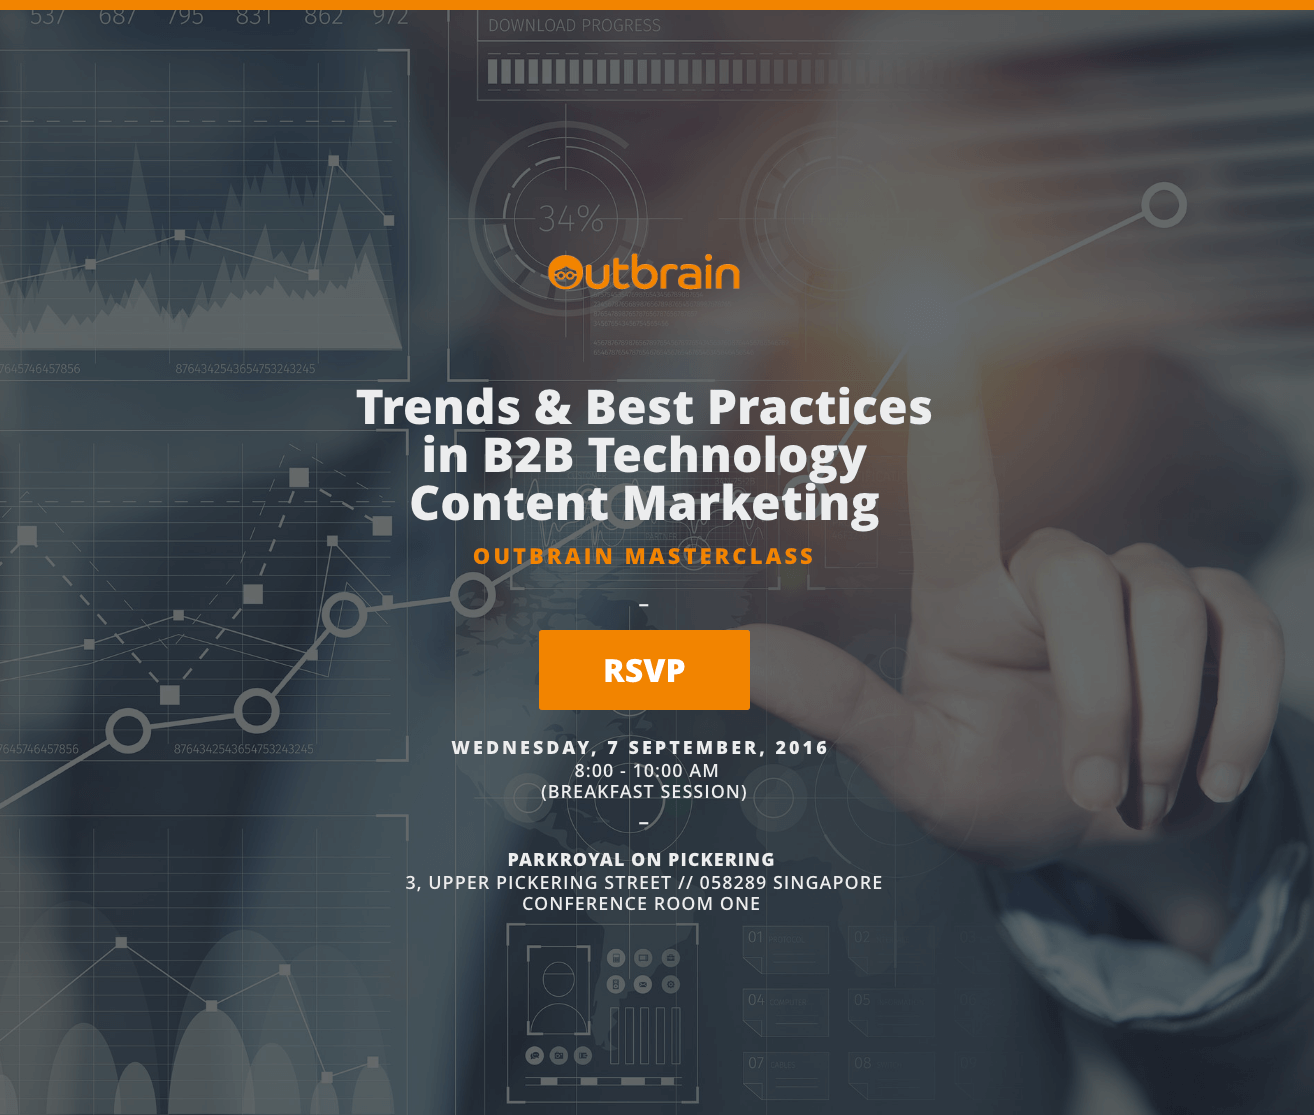 Best Practices In B2B Content Marketing